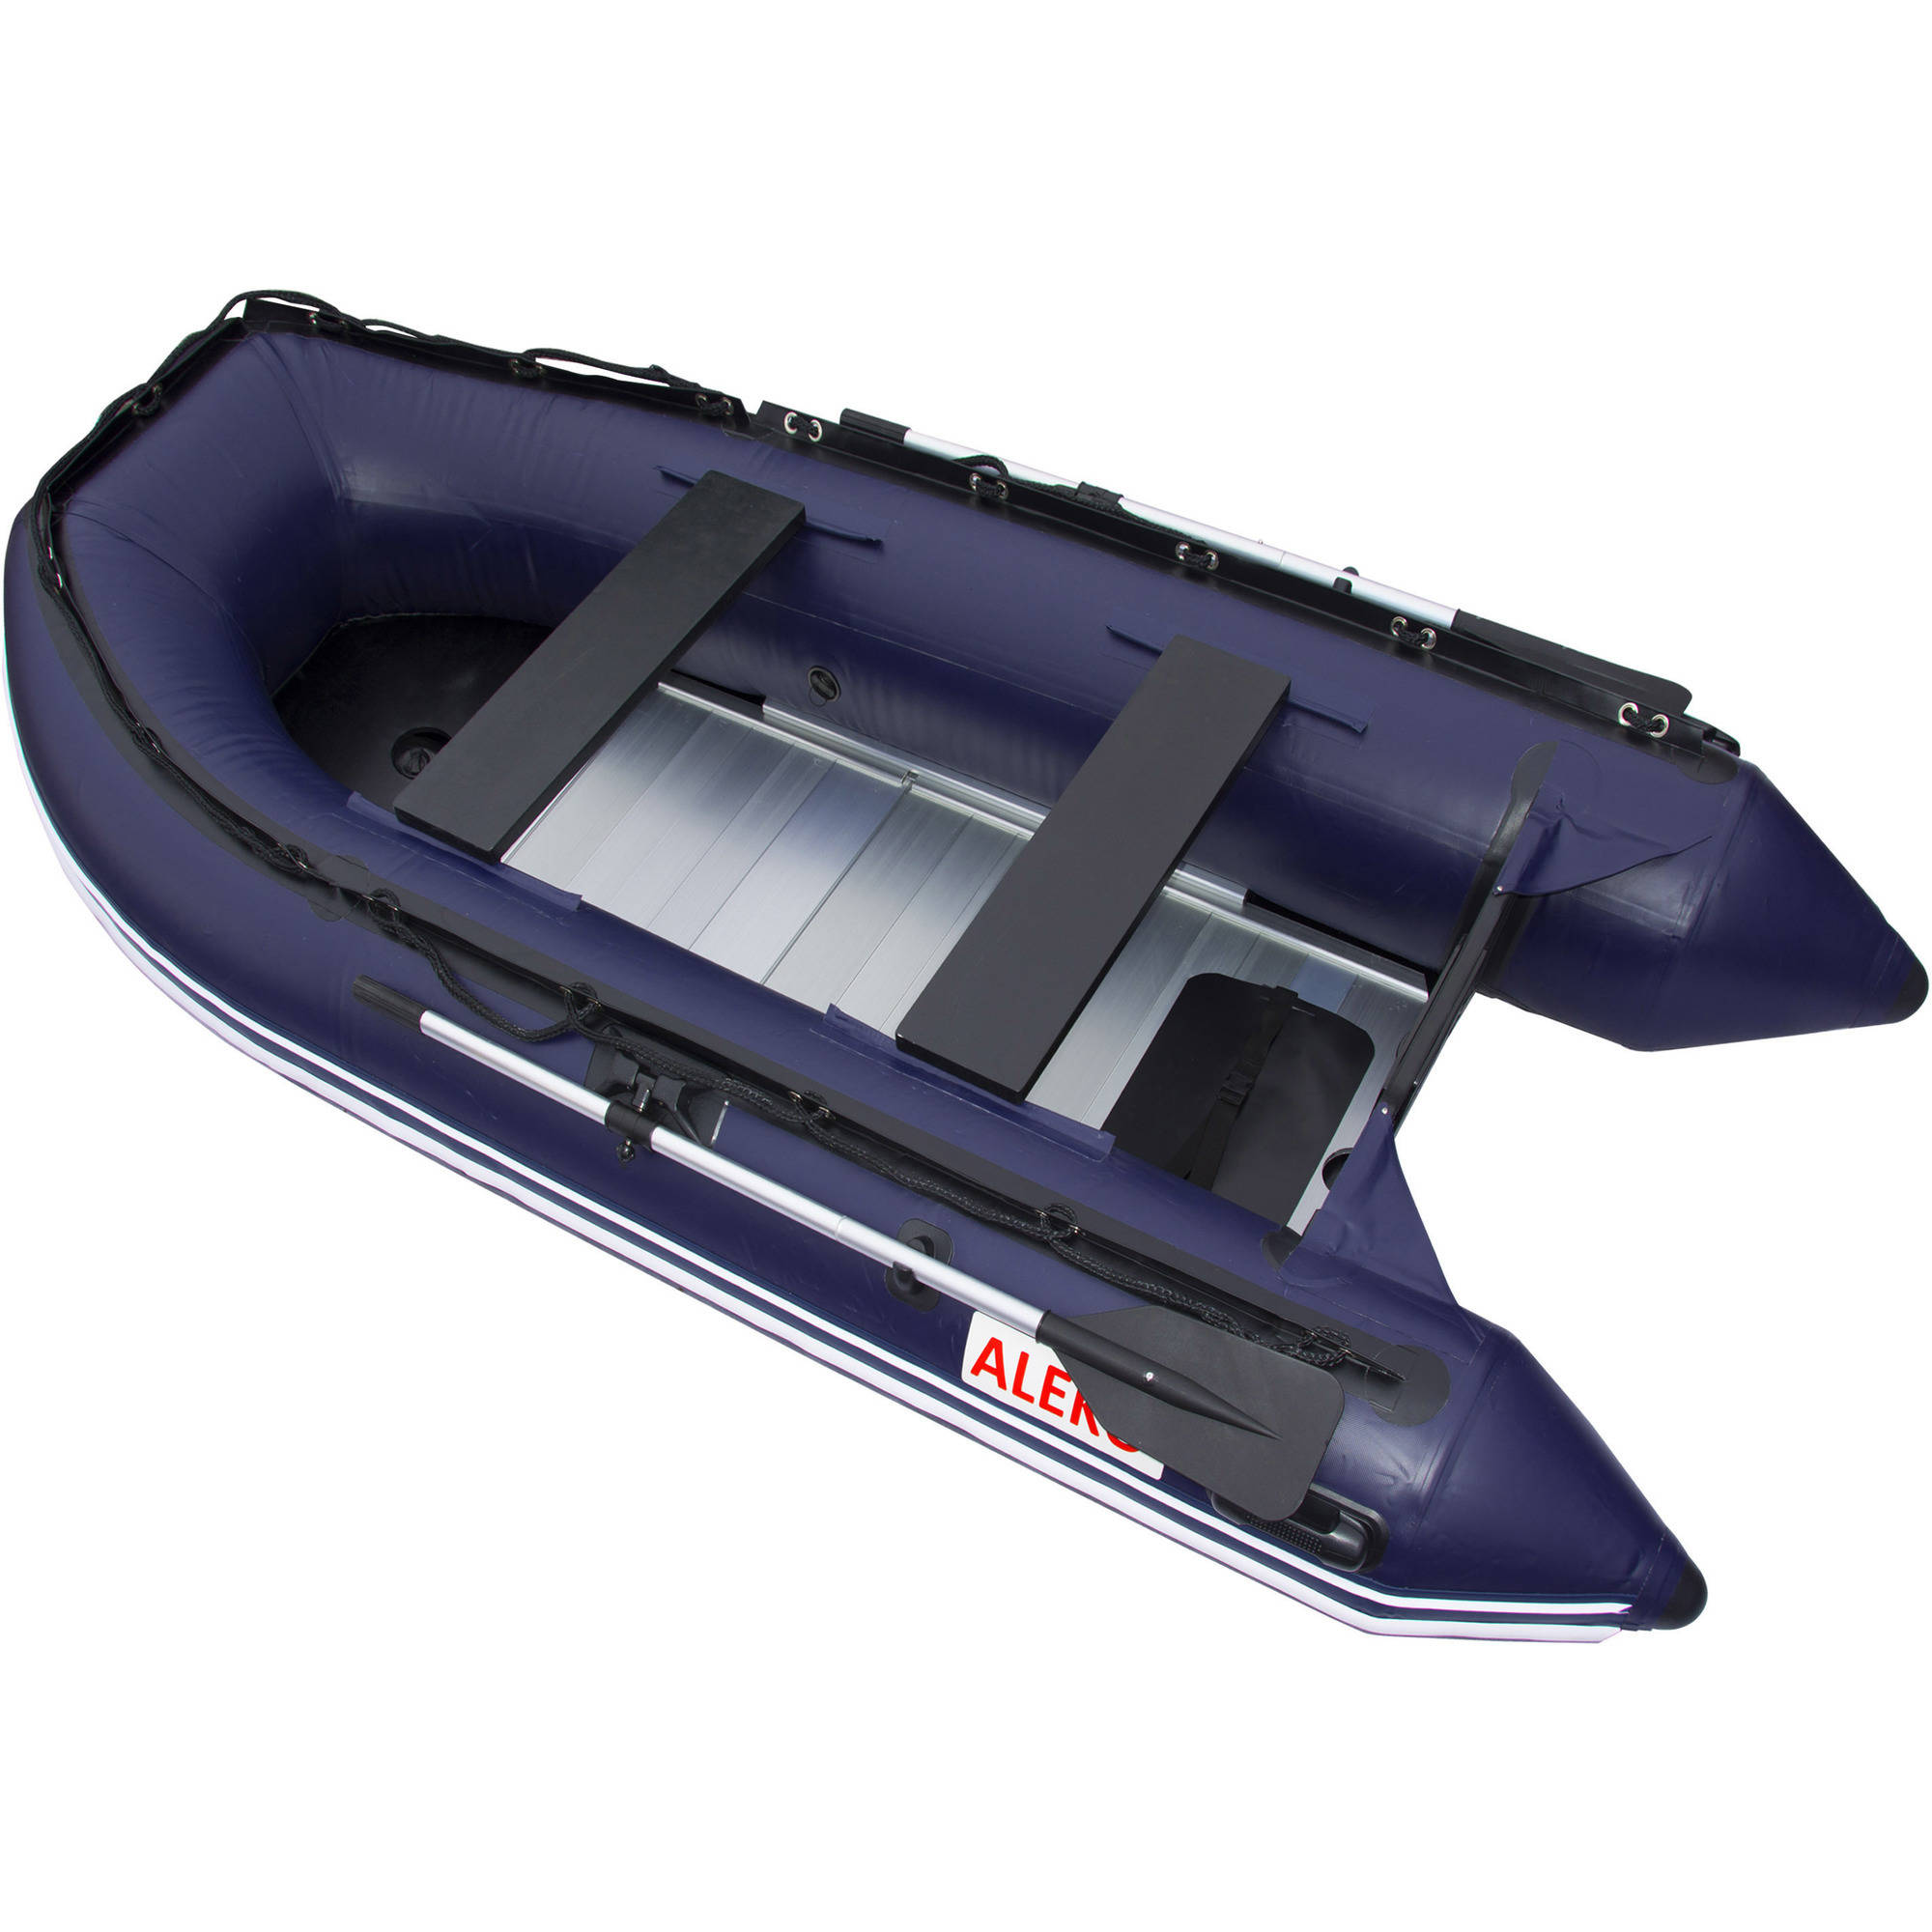 ALEKO Boat 12.5' Inflatable Boat with Aluminum Floor Heavy Duty Design, Blue by ALEKO